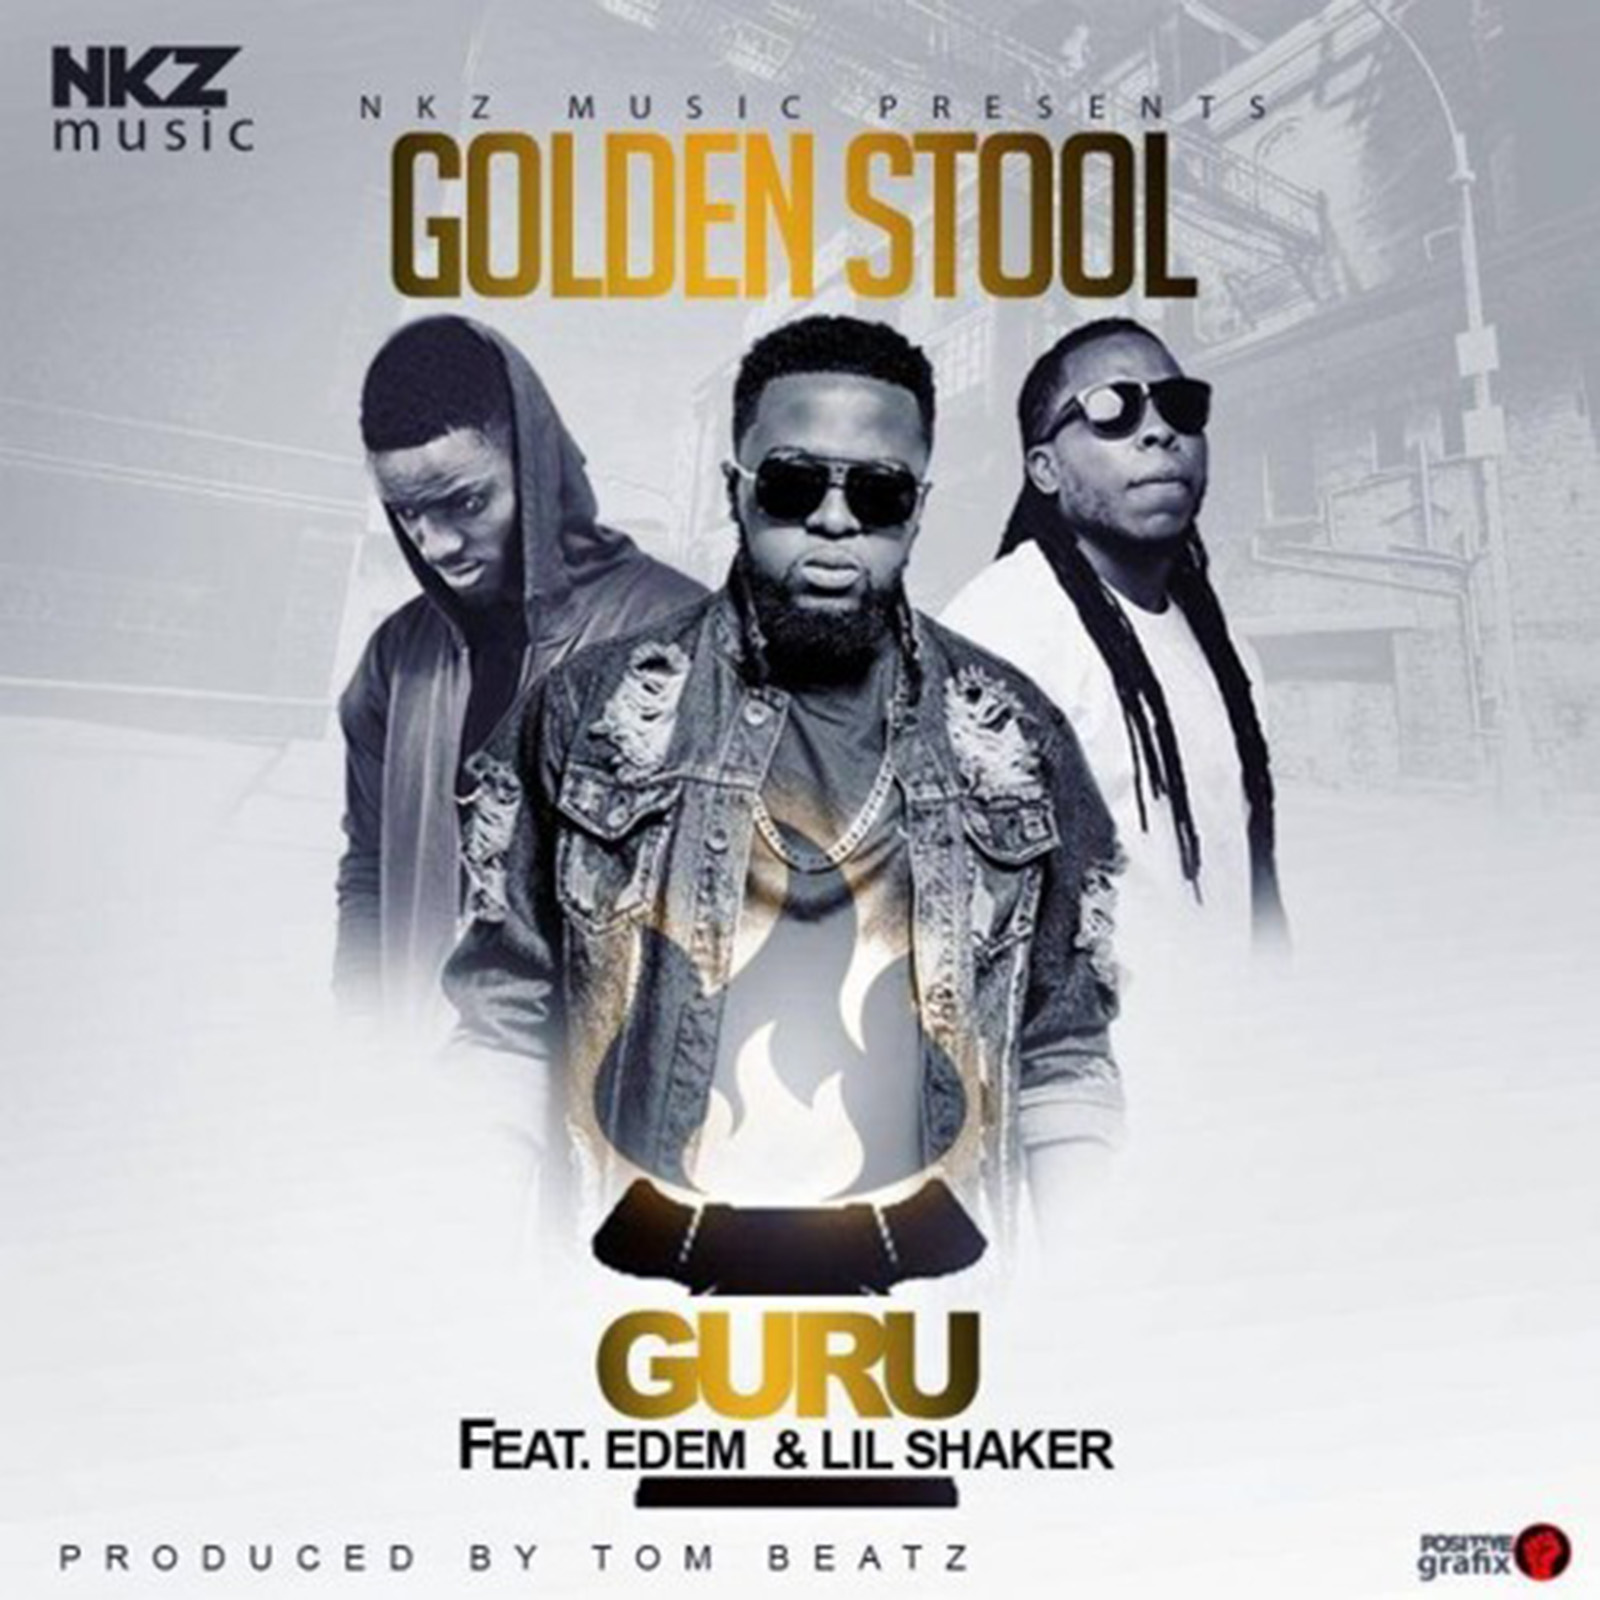 Golden Stool by Guru feat. Edem & Lil Shaker